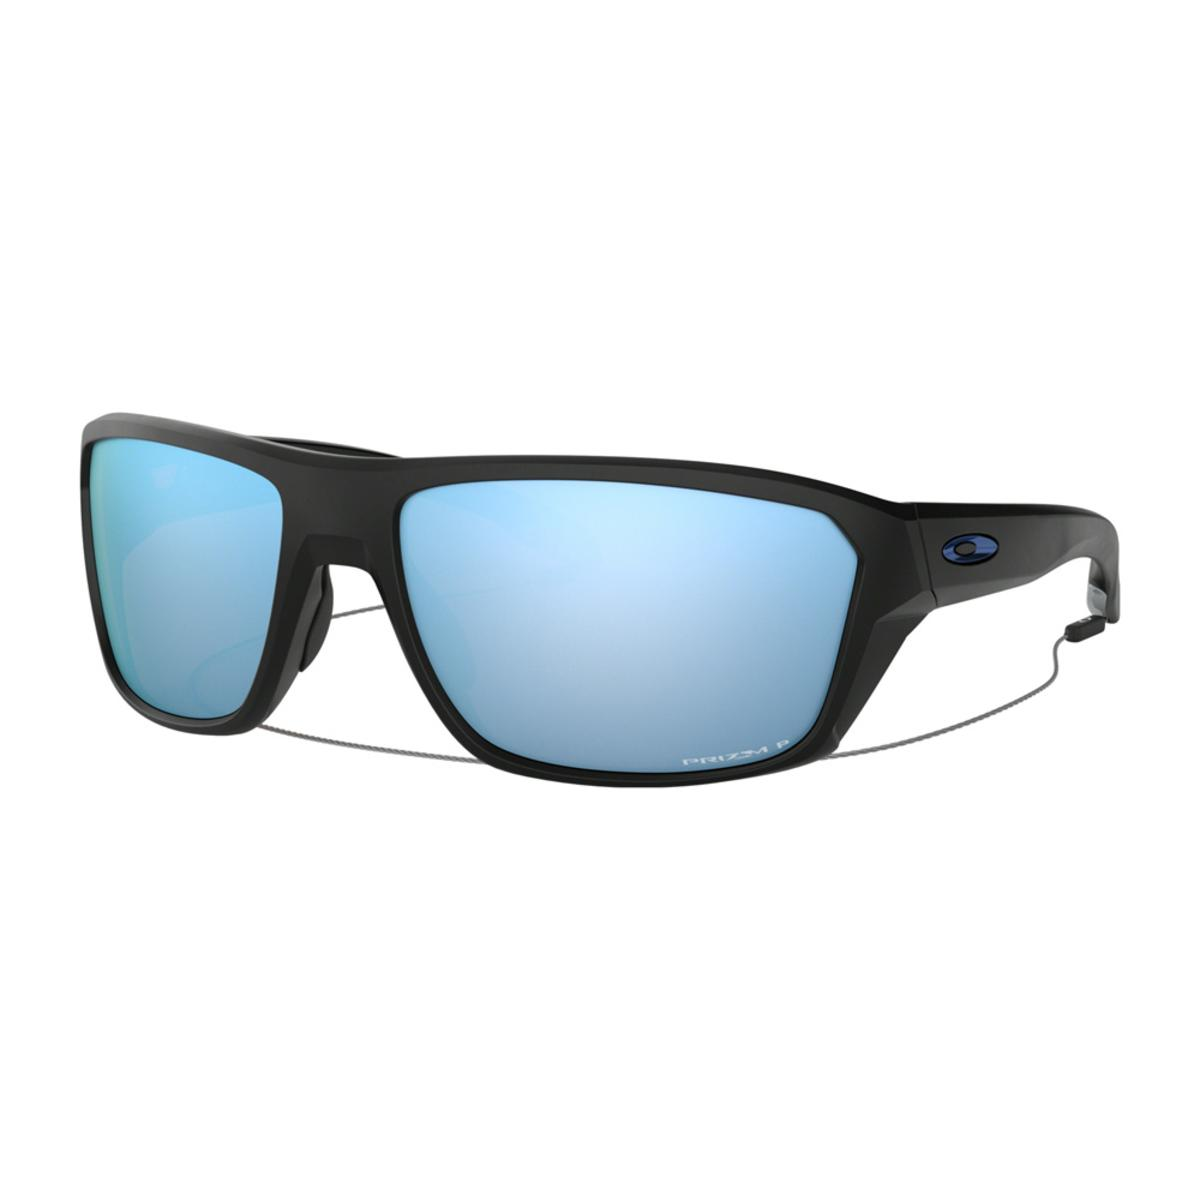 7bdc8d1c407 Oakley Split Shot Matte Black Sunglasses w Prizm Deep Water Polarized - The  Warming Store